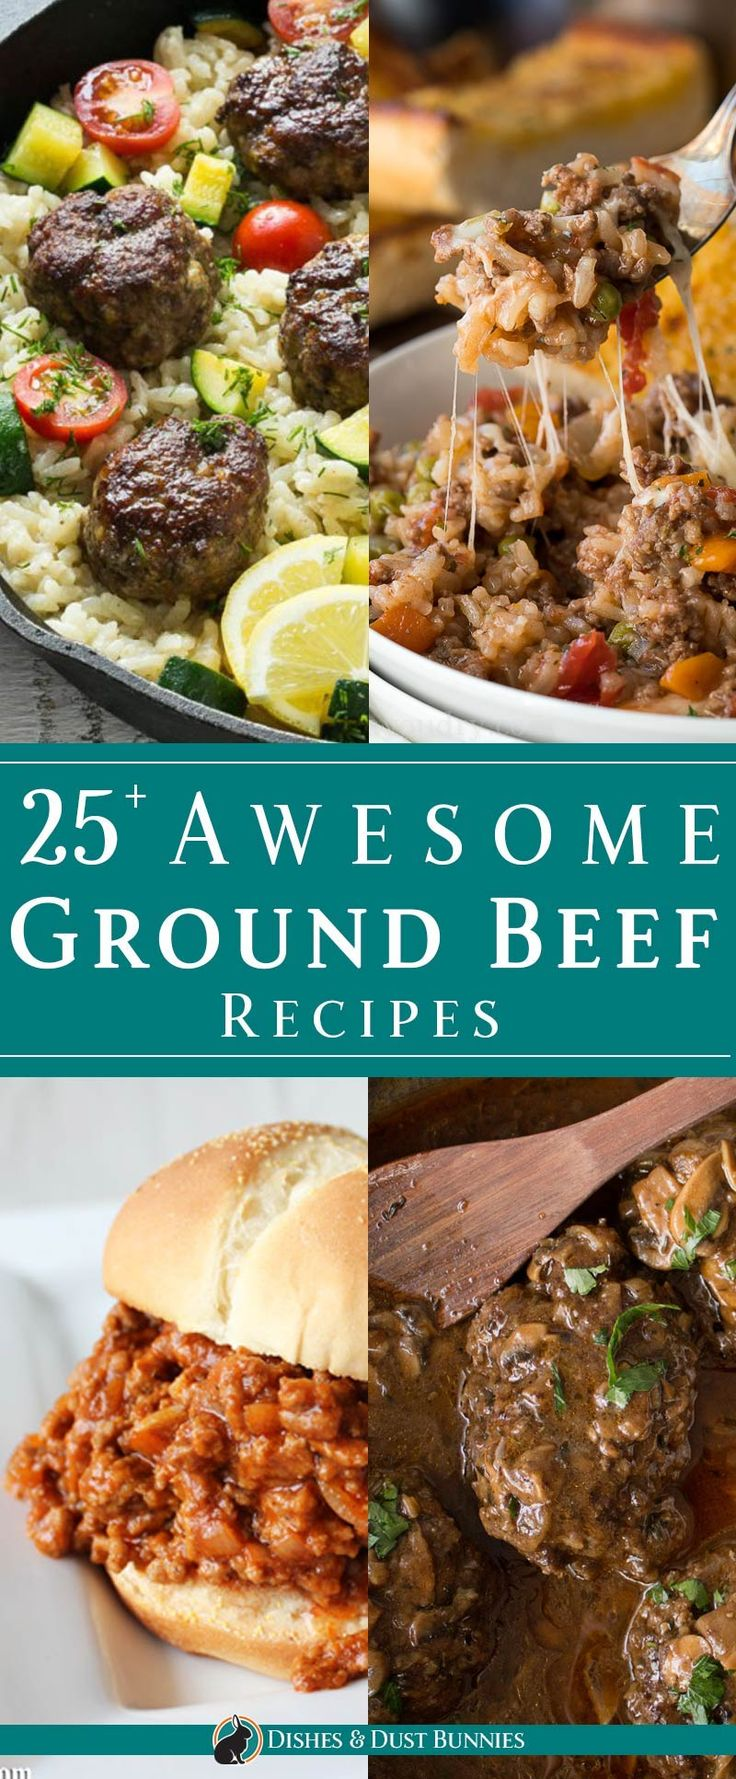 25+ Awesome Ground Beef Recipes via @mvdustbunnies